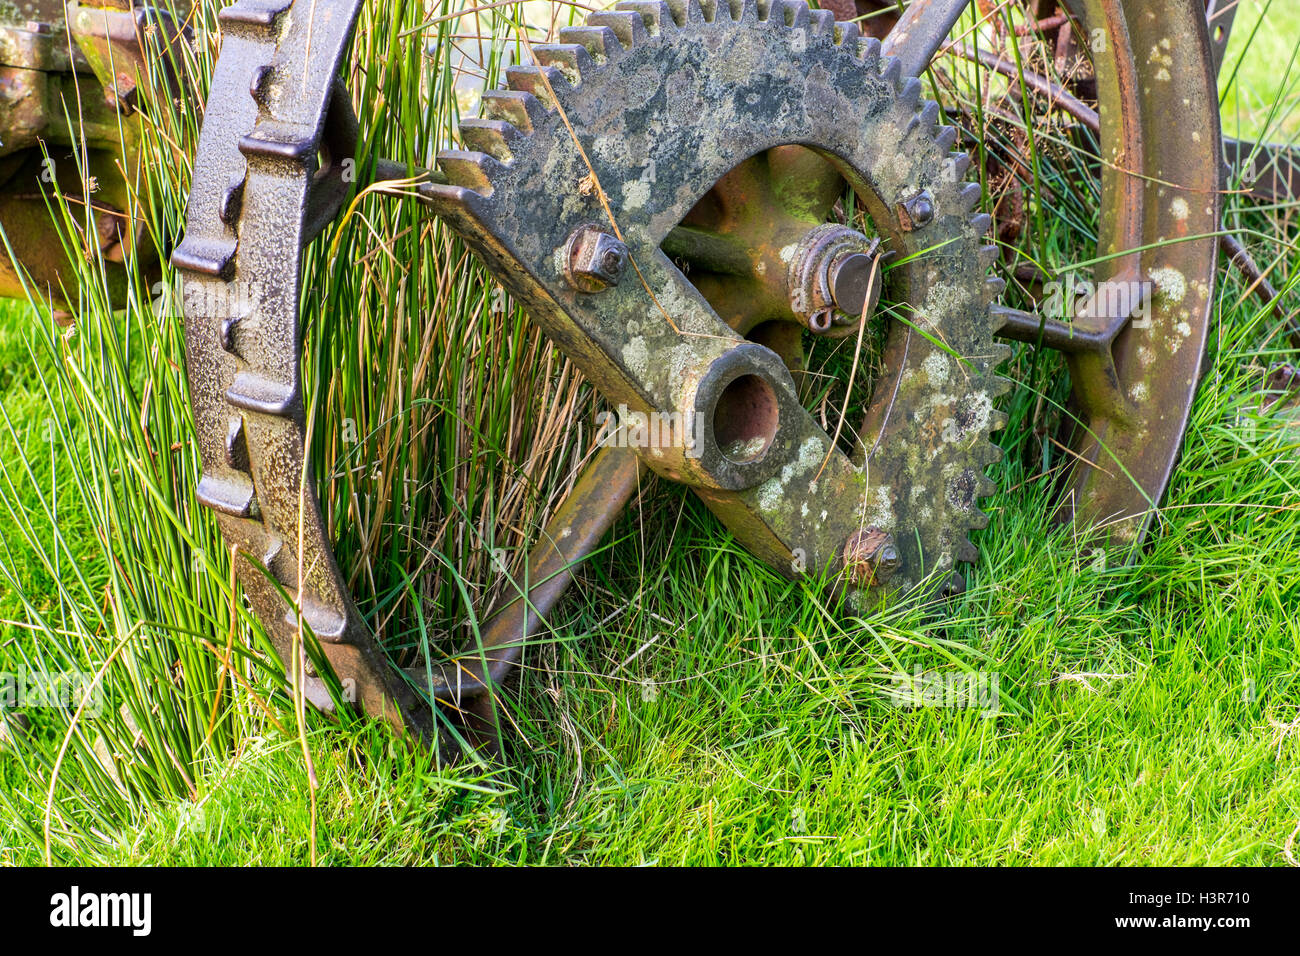 Obsolete farm machinery rusting on a hillside - Stock Image